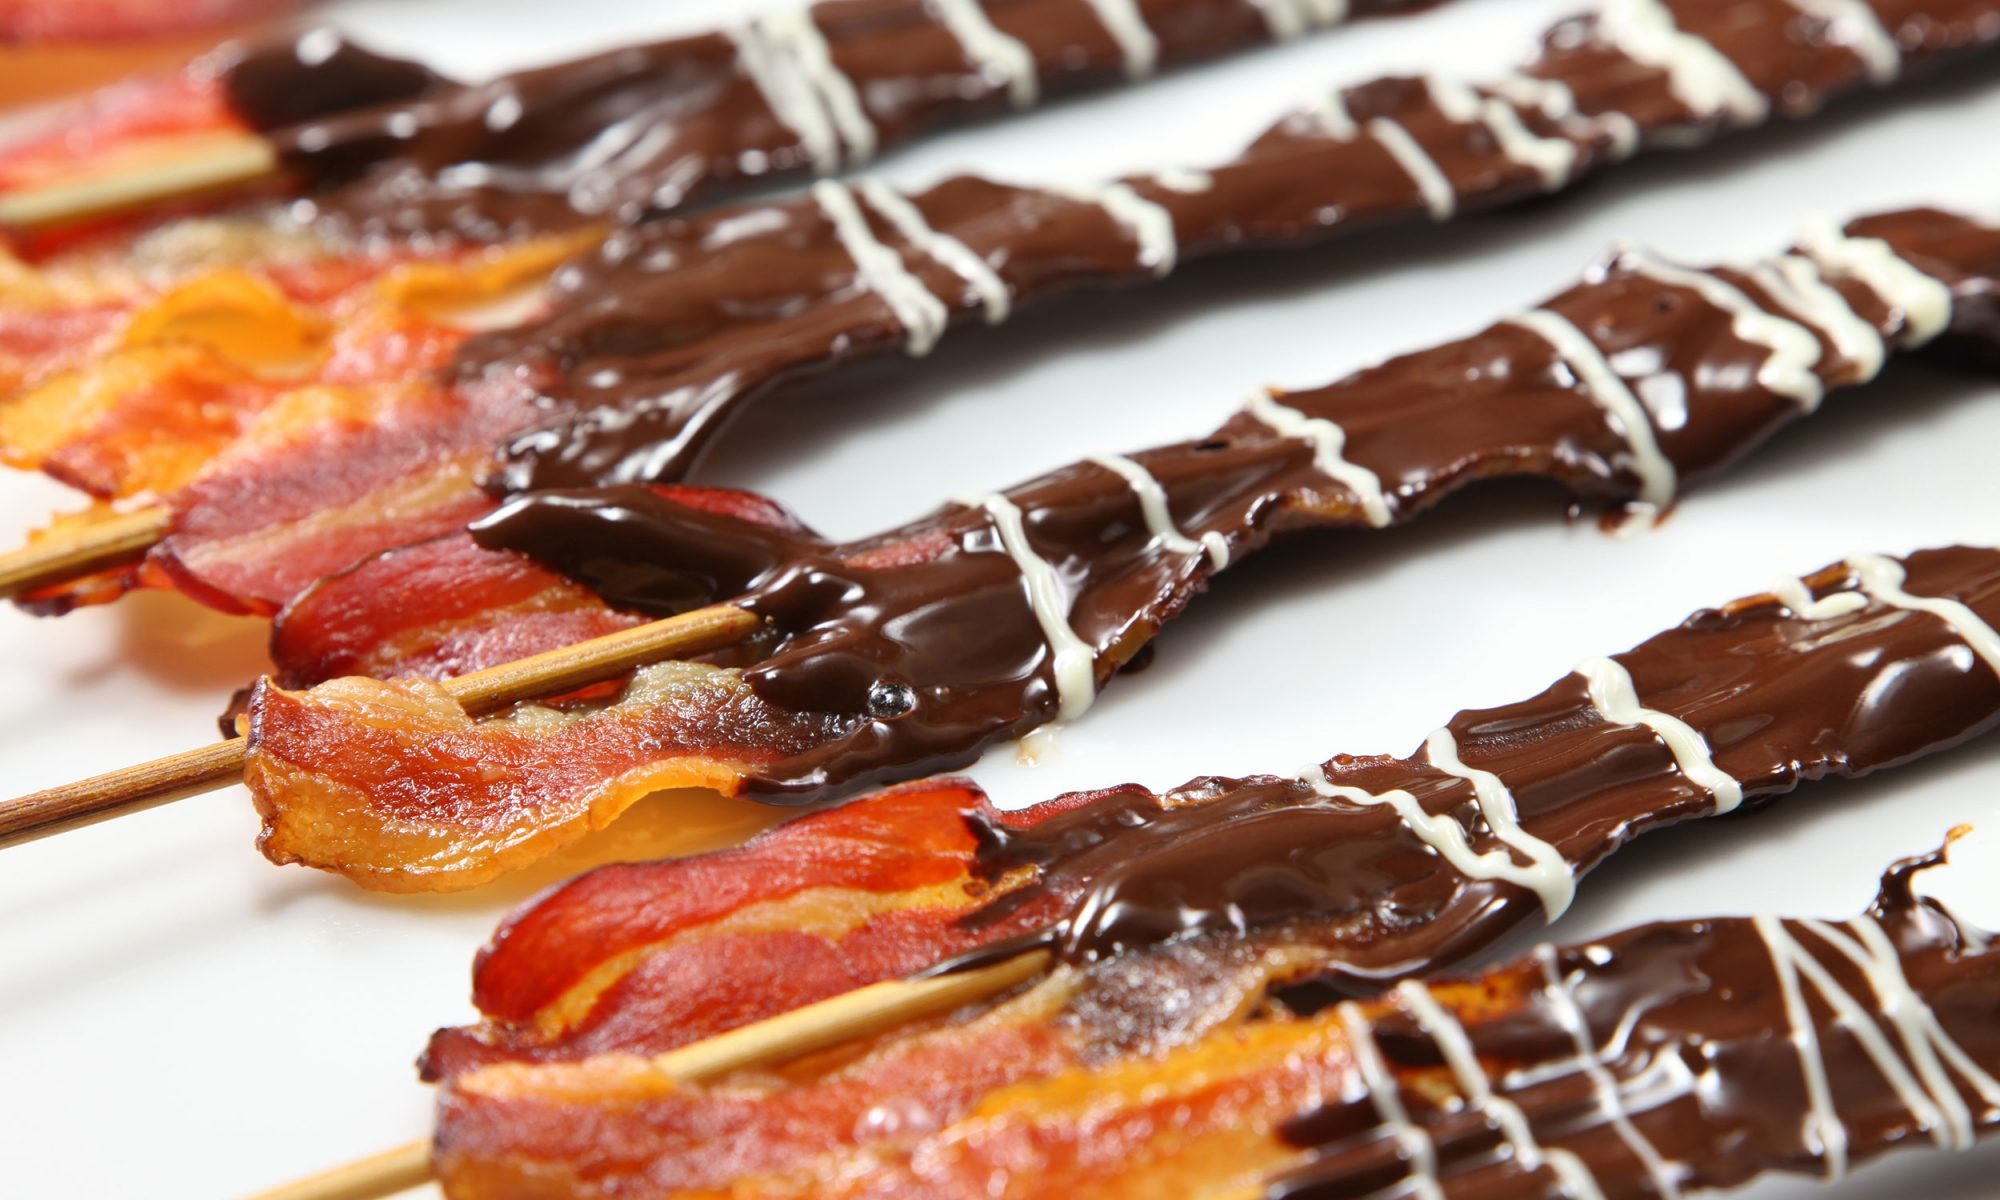 EC: Chocolate-Covered Bacon Is the Breakfast-Dessert Mash-Up of Your Dreams